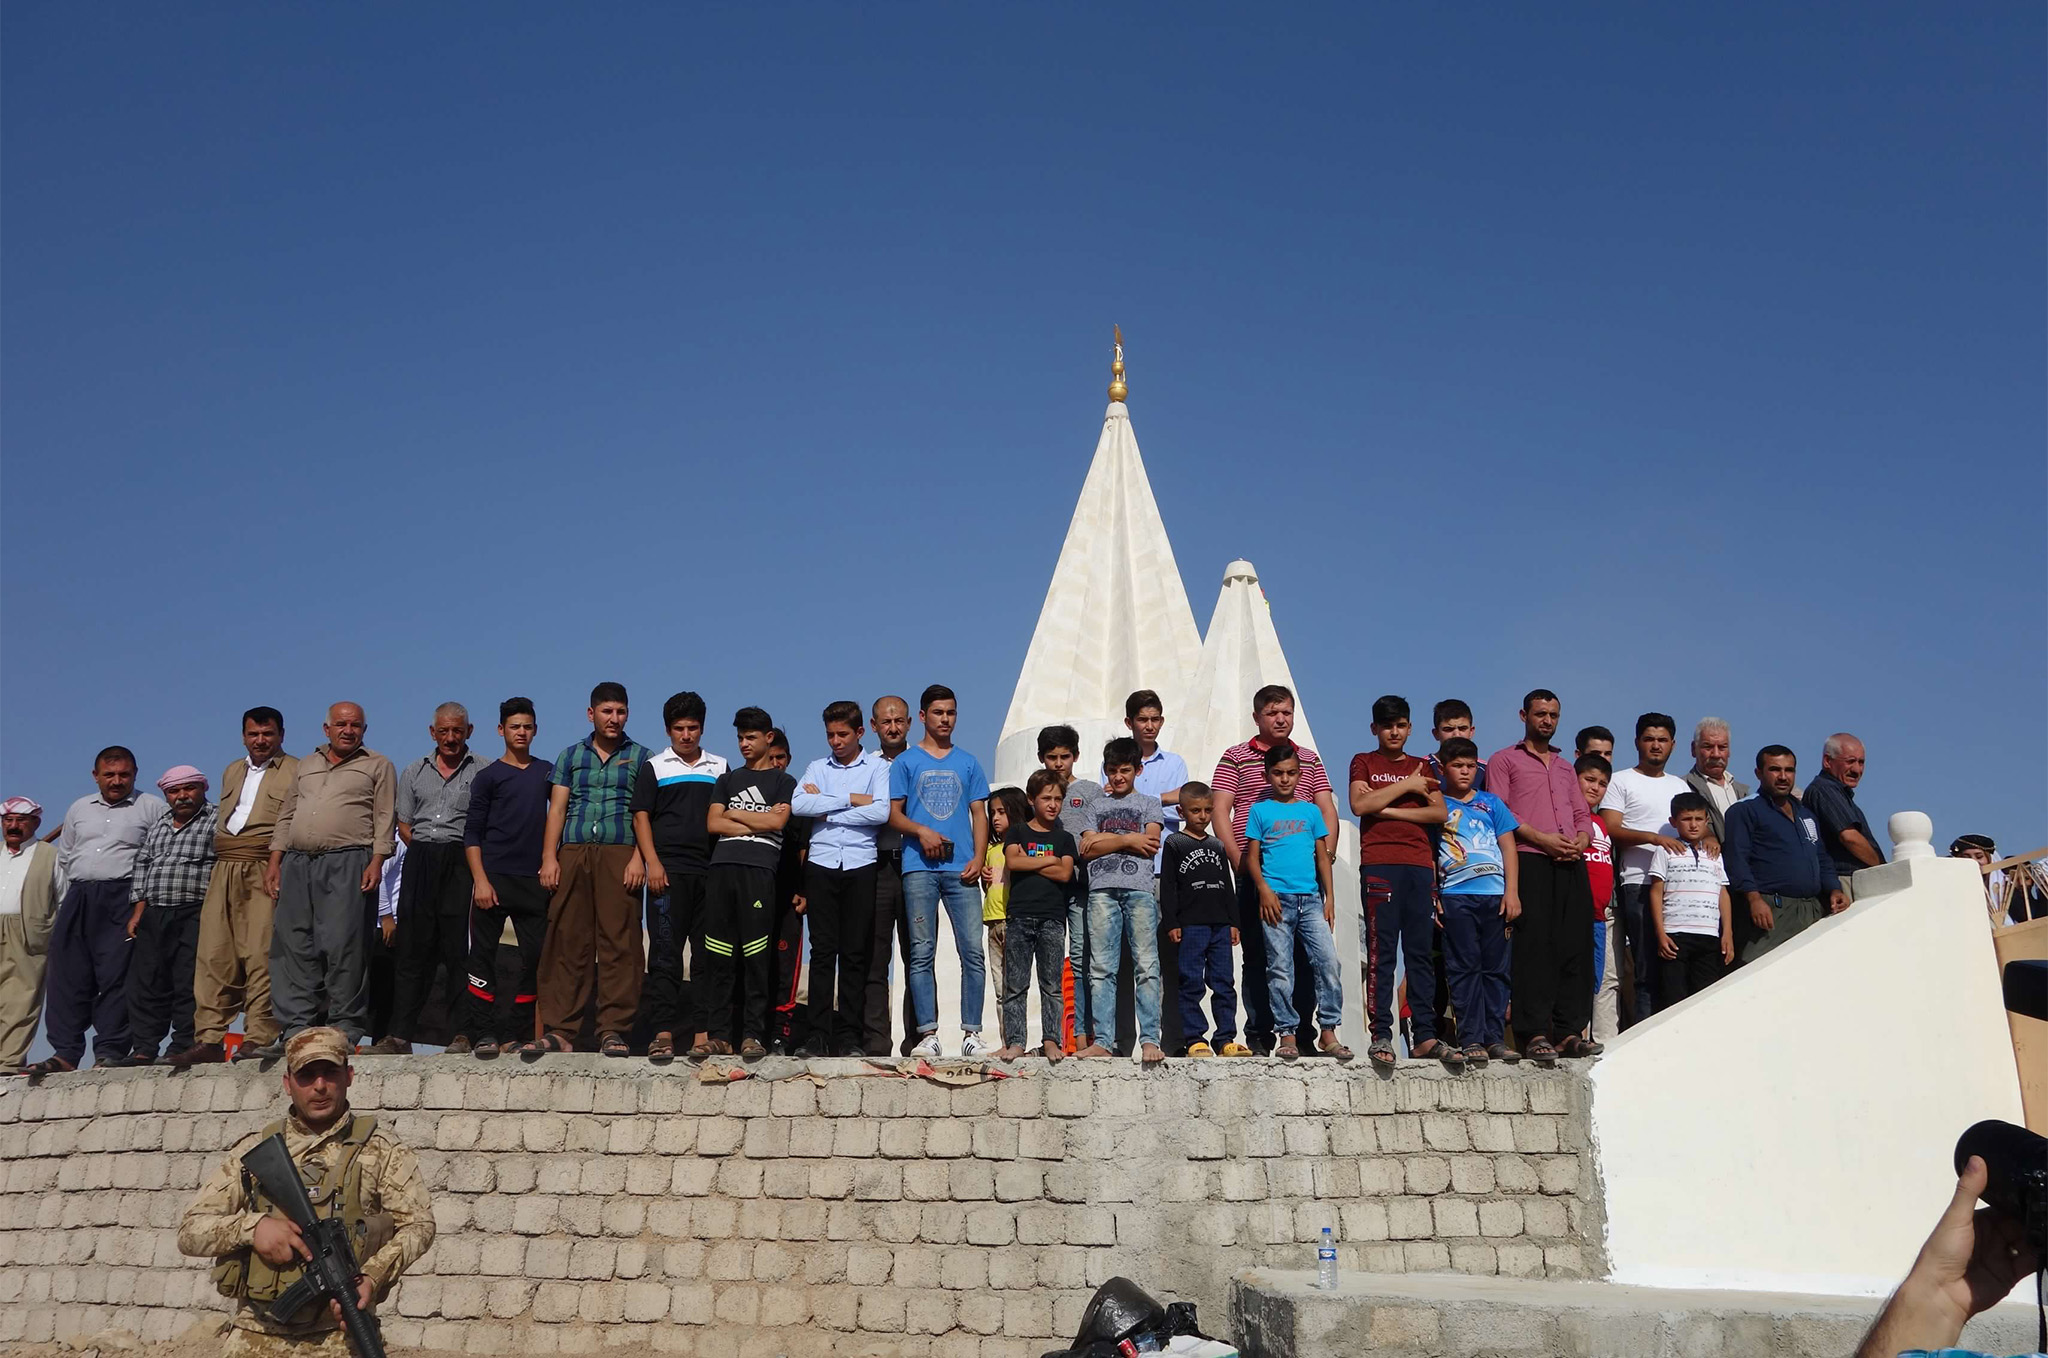 Yazidi men and boys gather at the ribbon-cutting ceremony for a reconstructed Yazidi temple in Khoshaba, Iraq, September 2017.